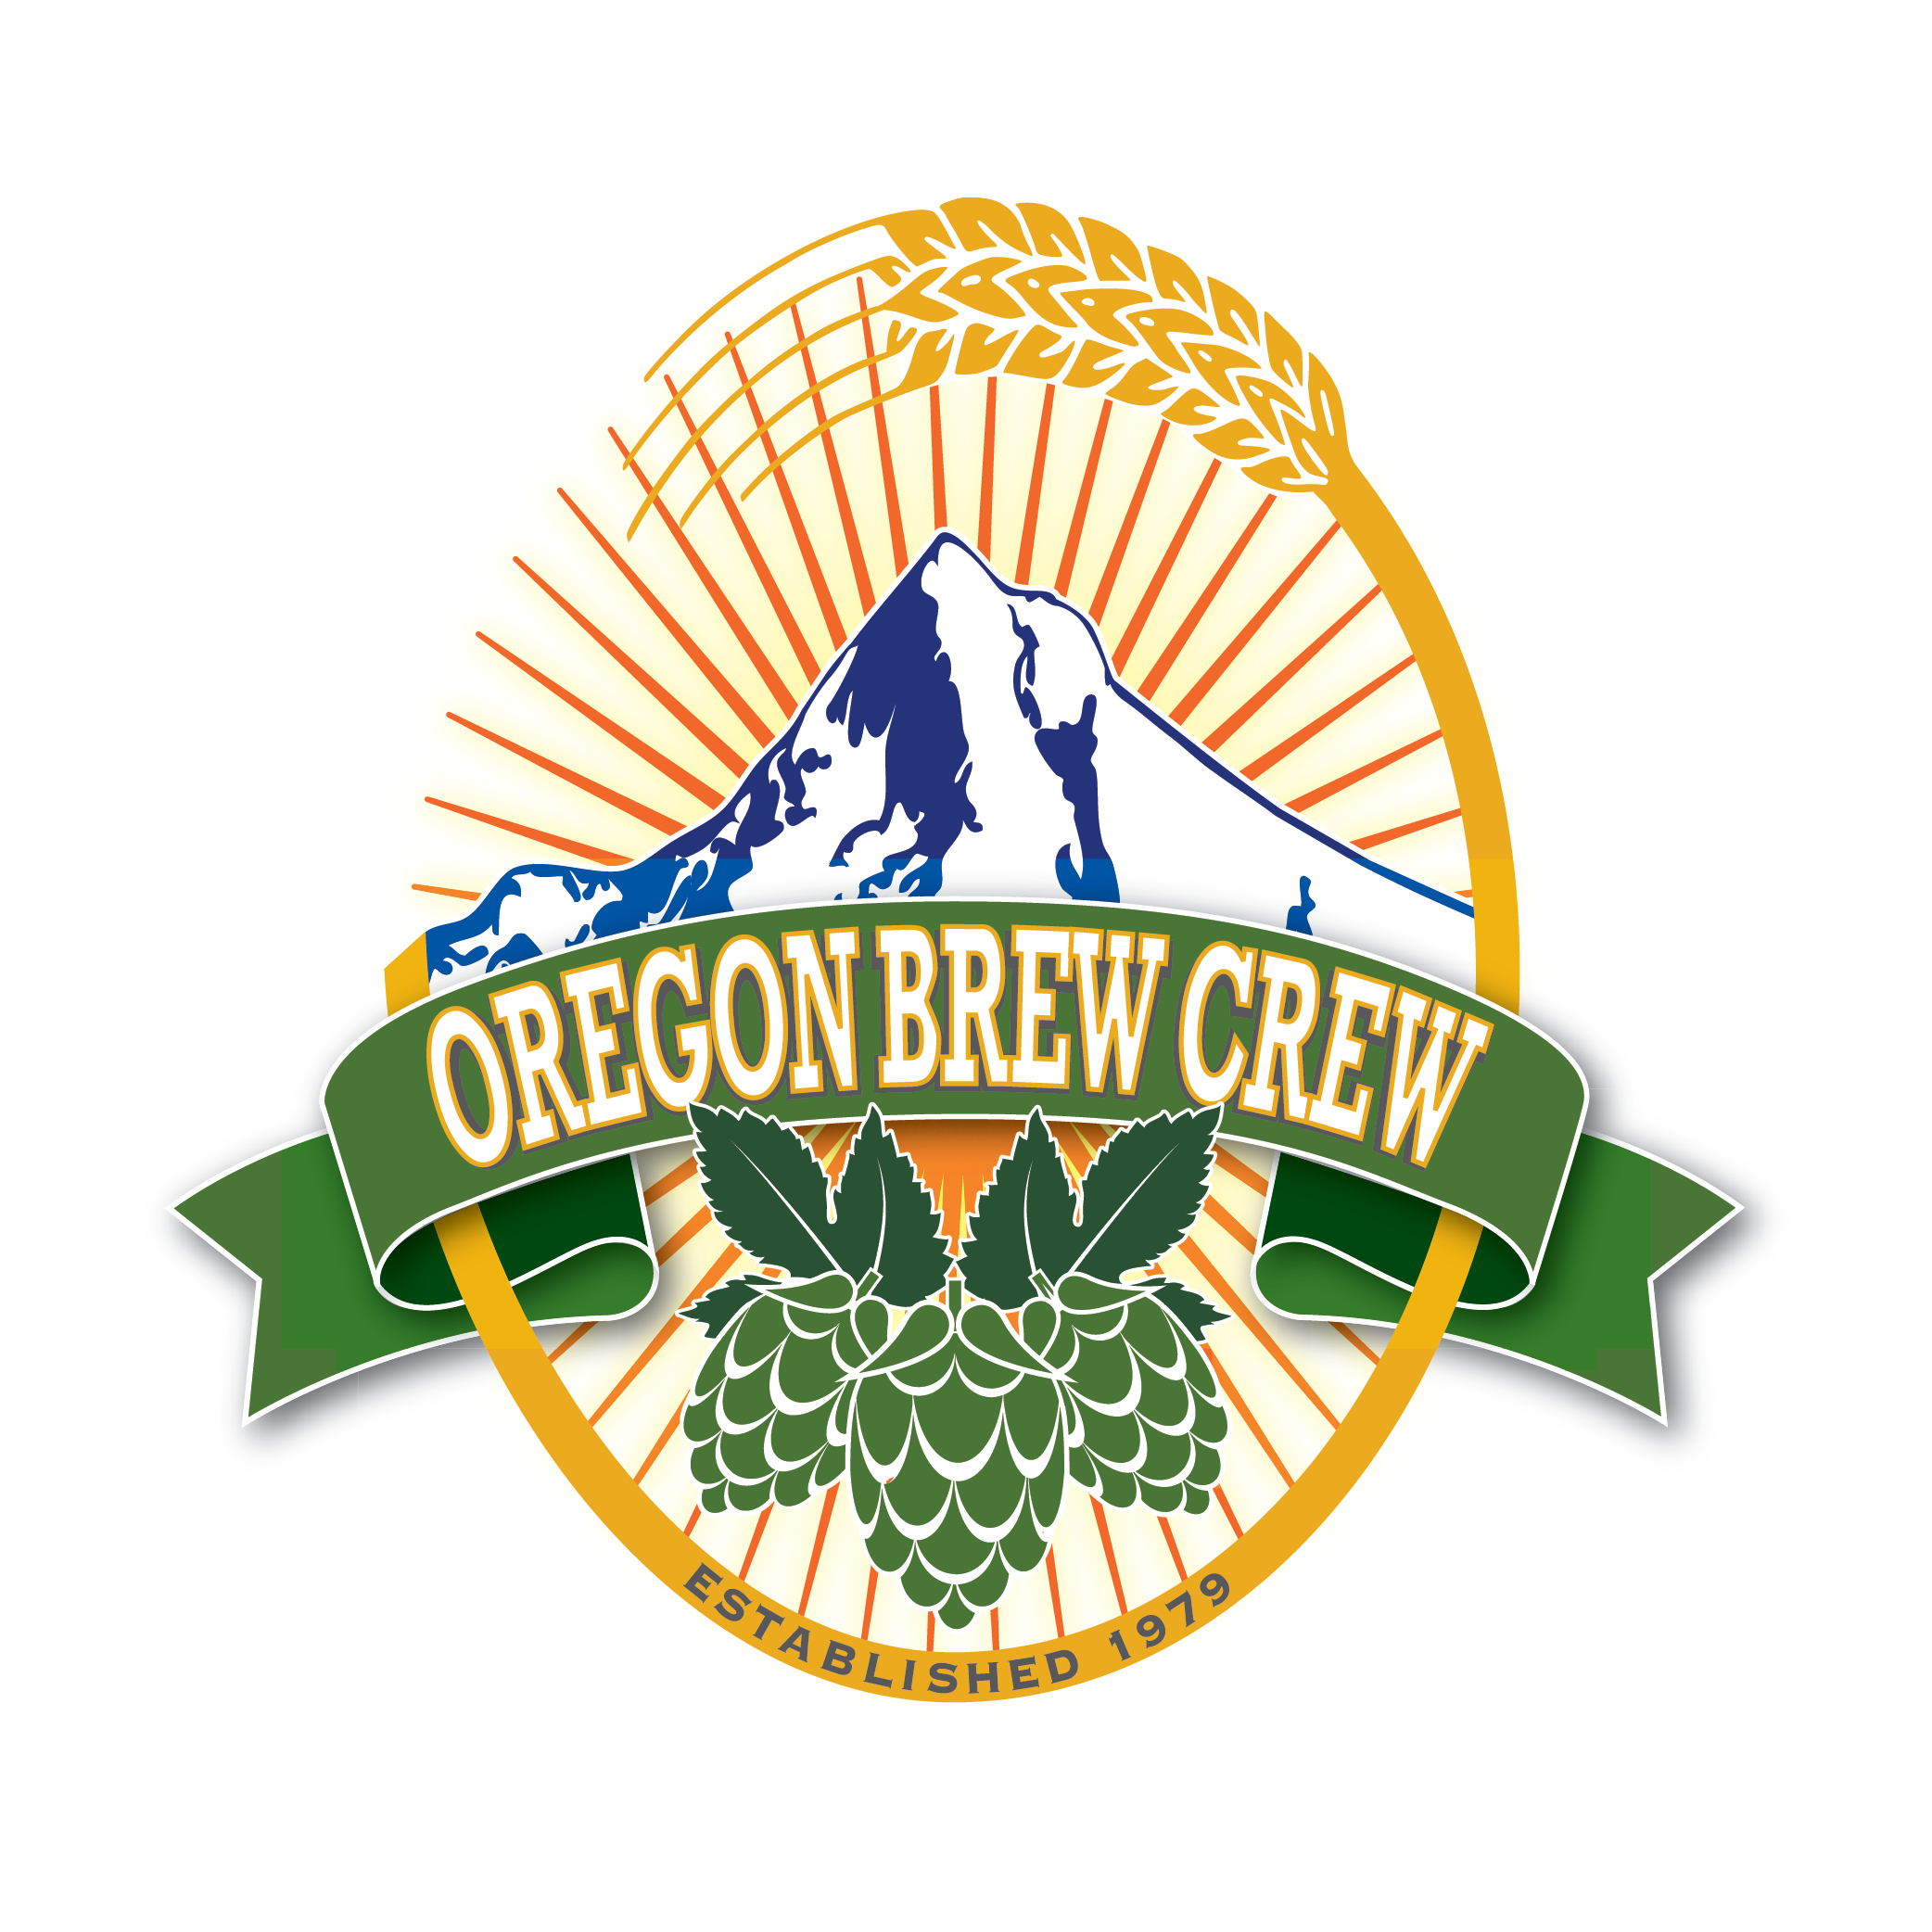 Oregon Brew Crew   Headquartered in Portland, the Oregon Brew Crew is one of the oldest and largest home brewing clubs in the United States. OBC is a non-profit organization dedicated to the education and advancement of home brewing and beer appreciation.